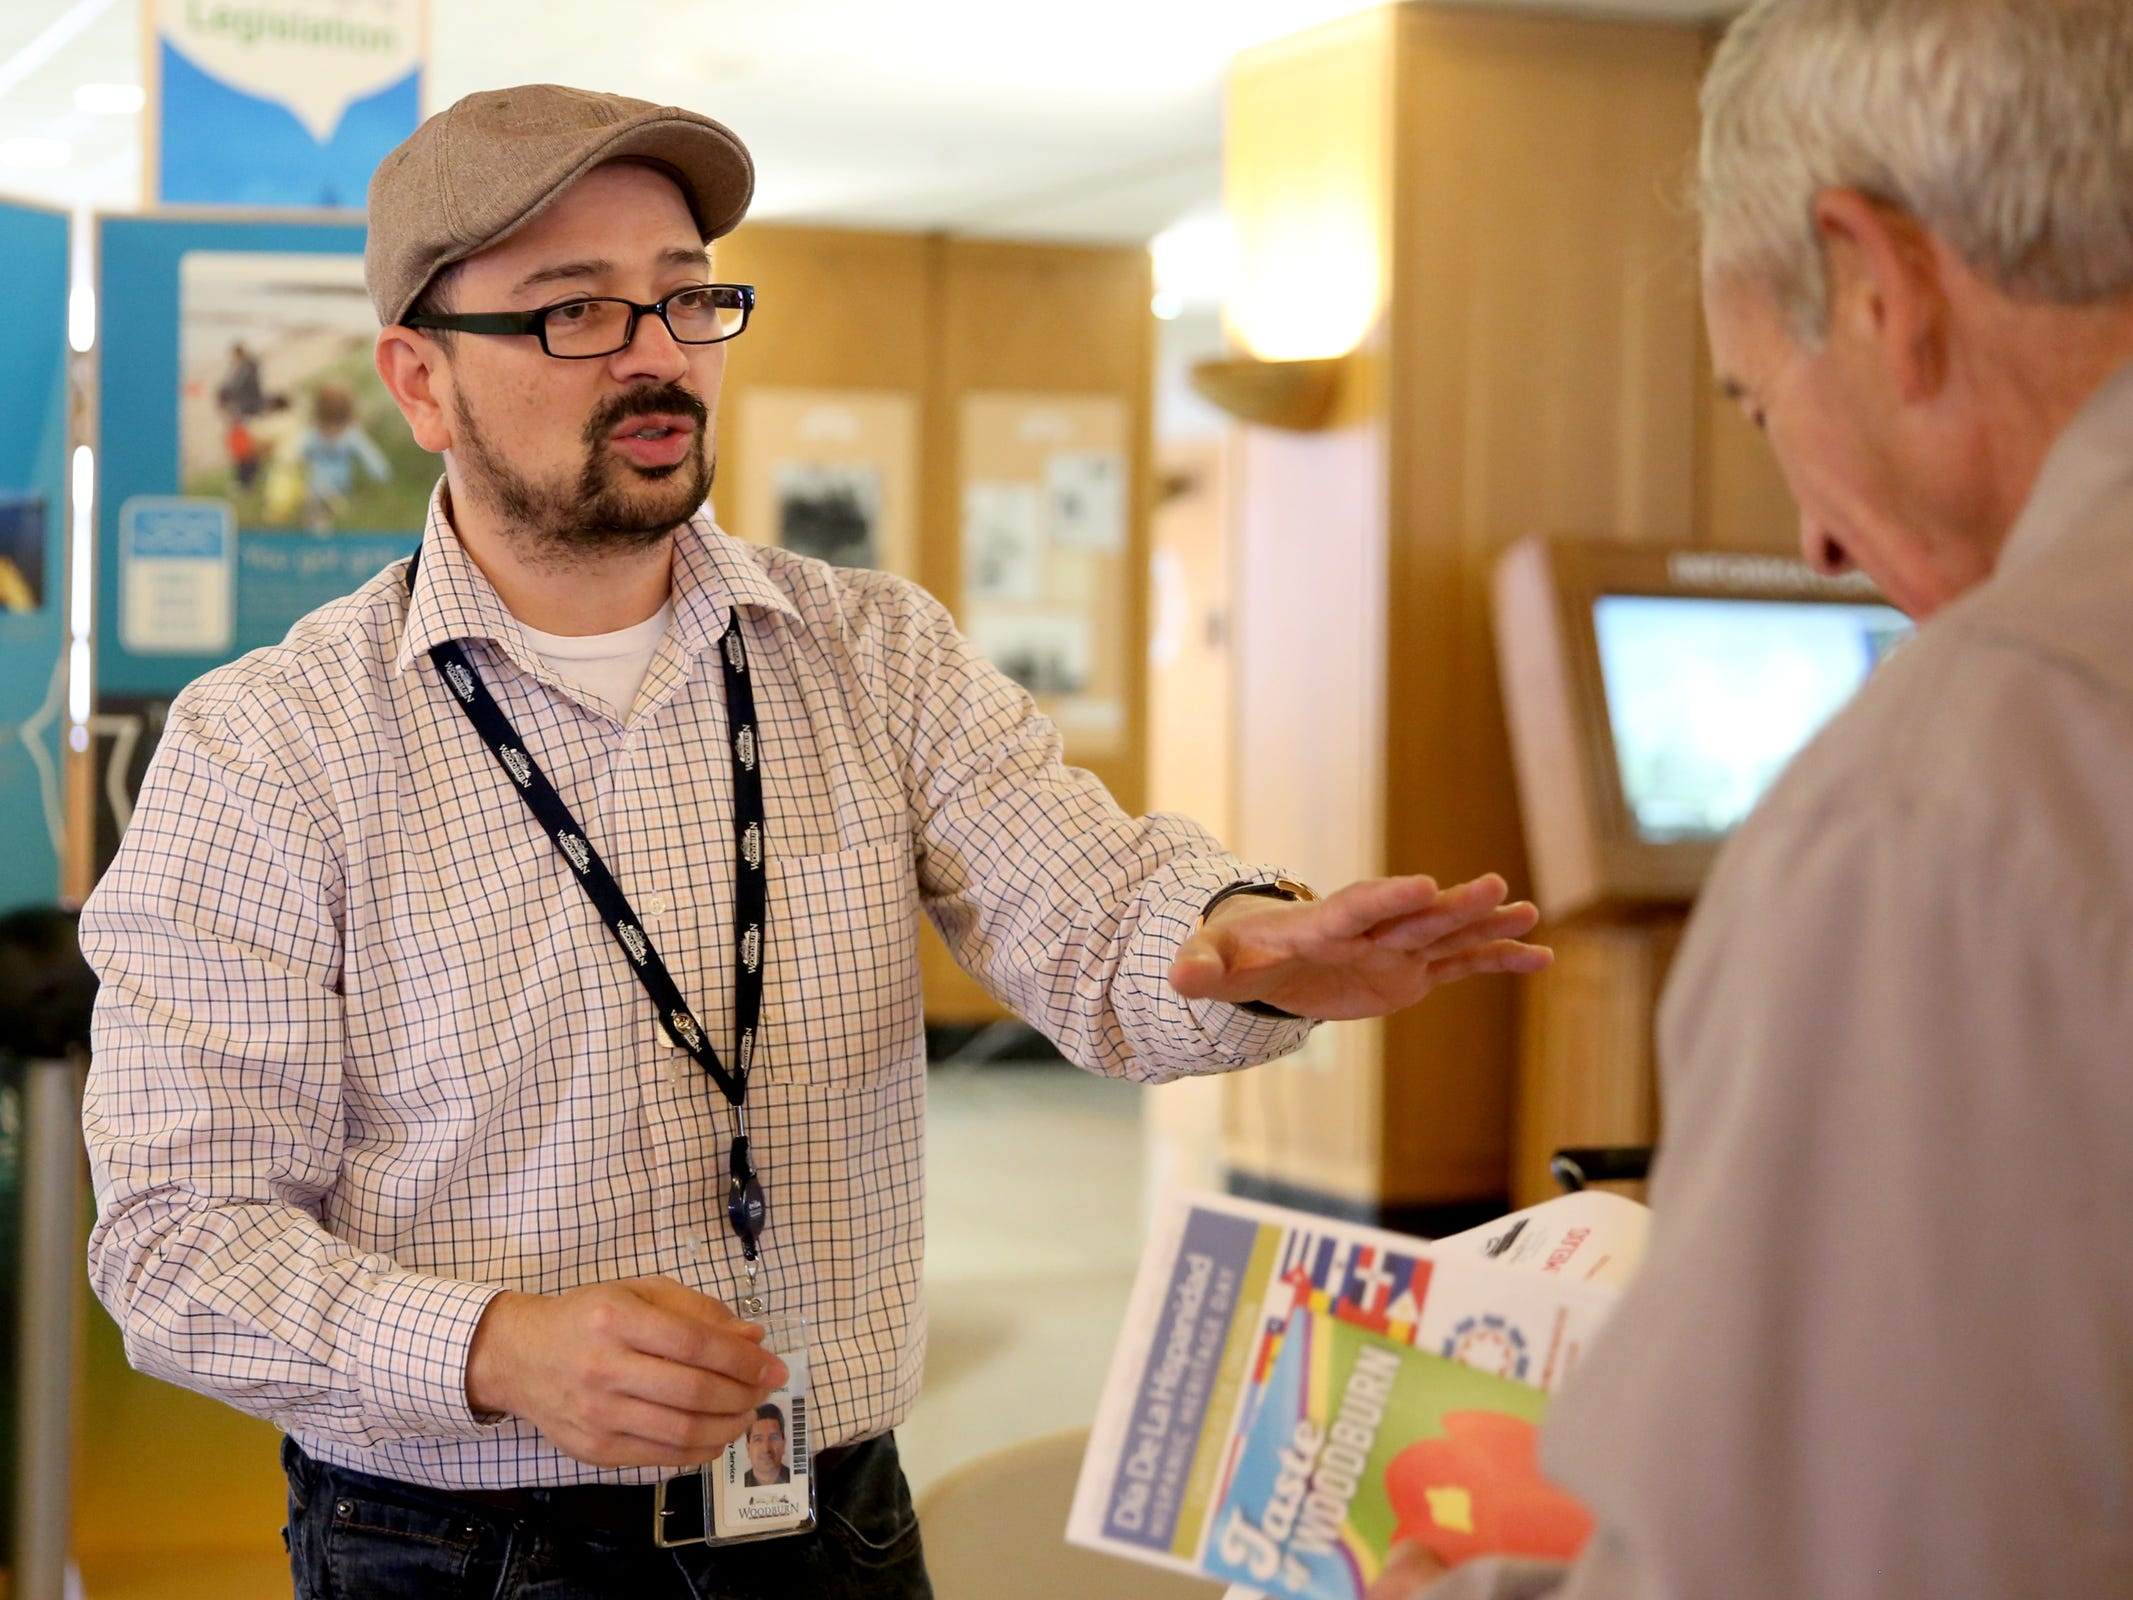 Gustavo Gutierrez-Gomez, left, a community relations manager with the city of Woodburn, gives out information of the city during Hispanic Heritage Day at the Oregon State Capitol on Saturday, Oct. 20, 2018.